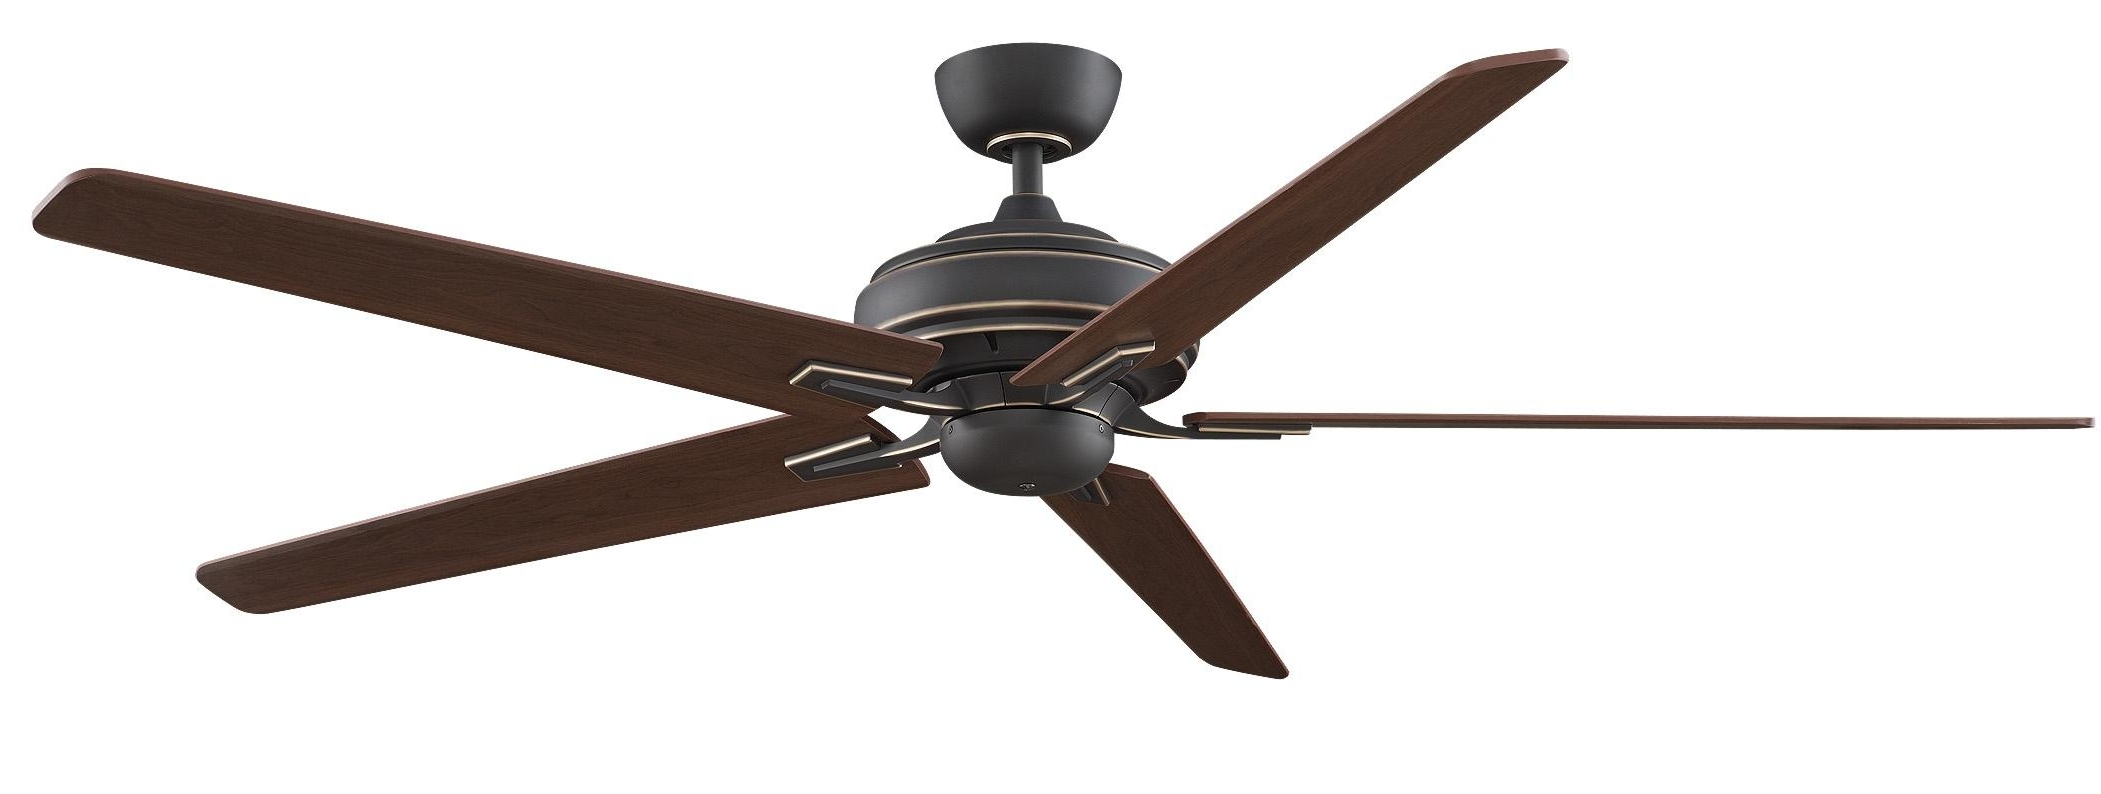 Brown Outdoor Ceiling Fan With Light In 2019 Inch Outdoor Ceiling Fan With 60 Ceiling Fan With Light (Gallery 15 of 20)